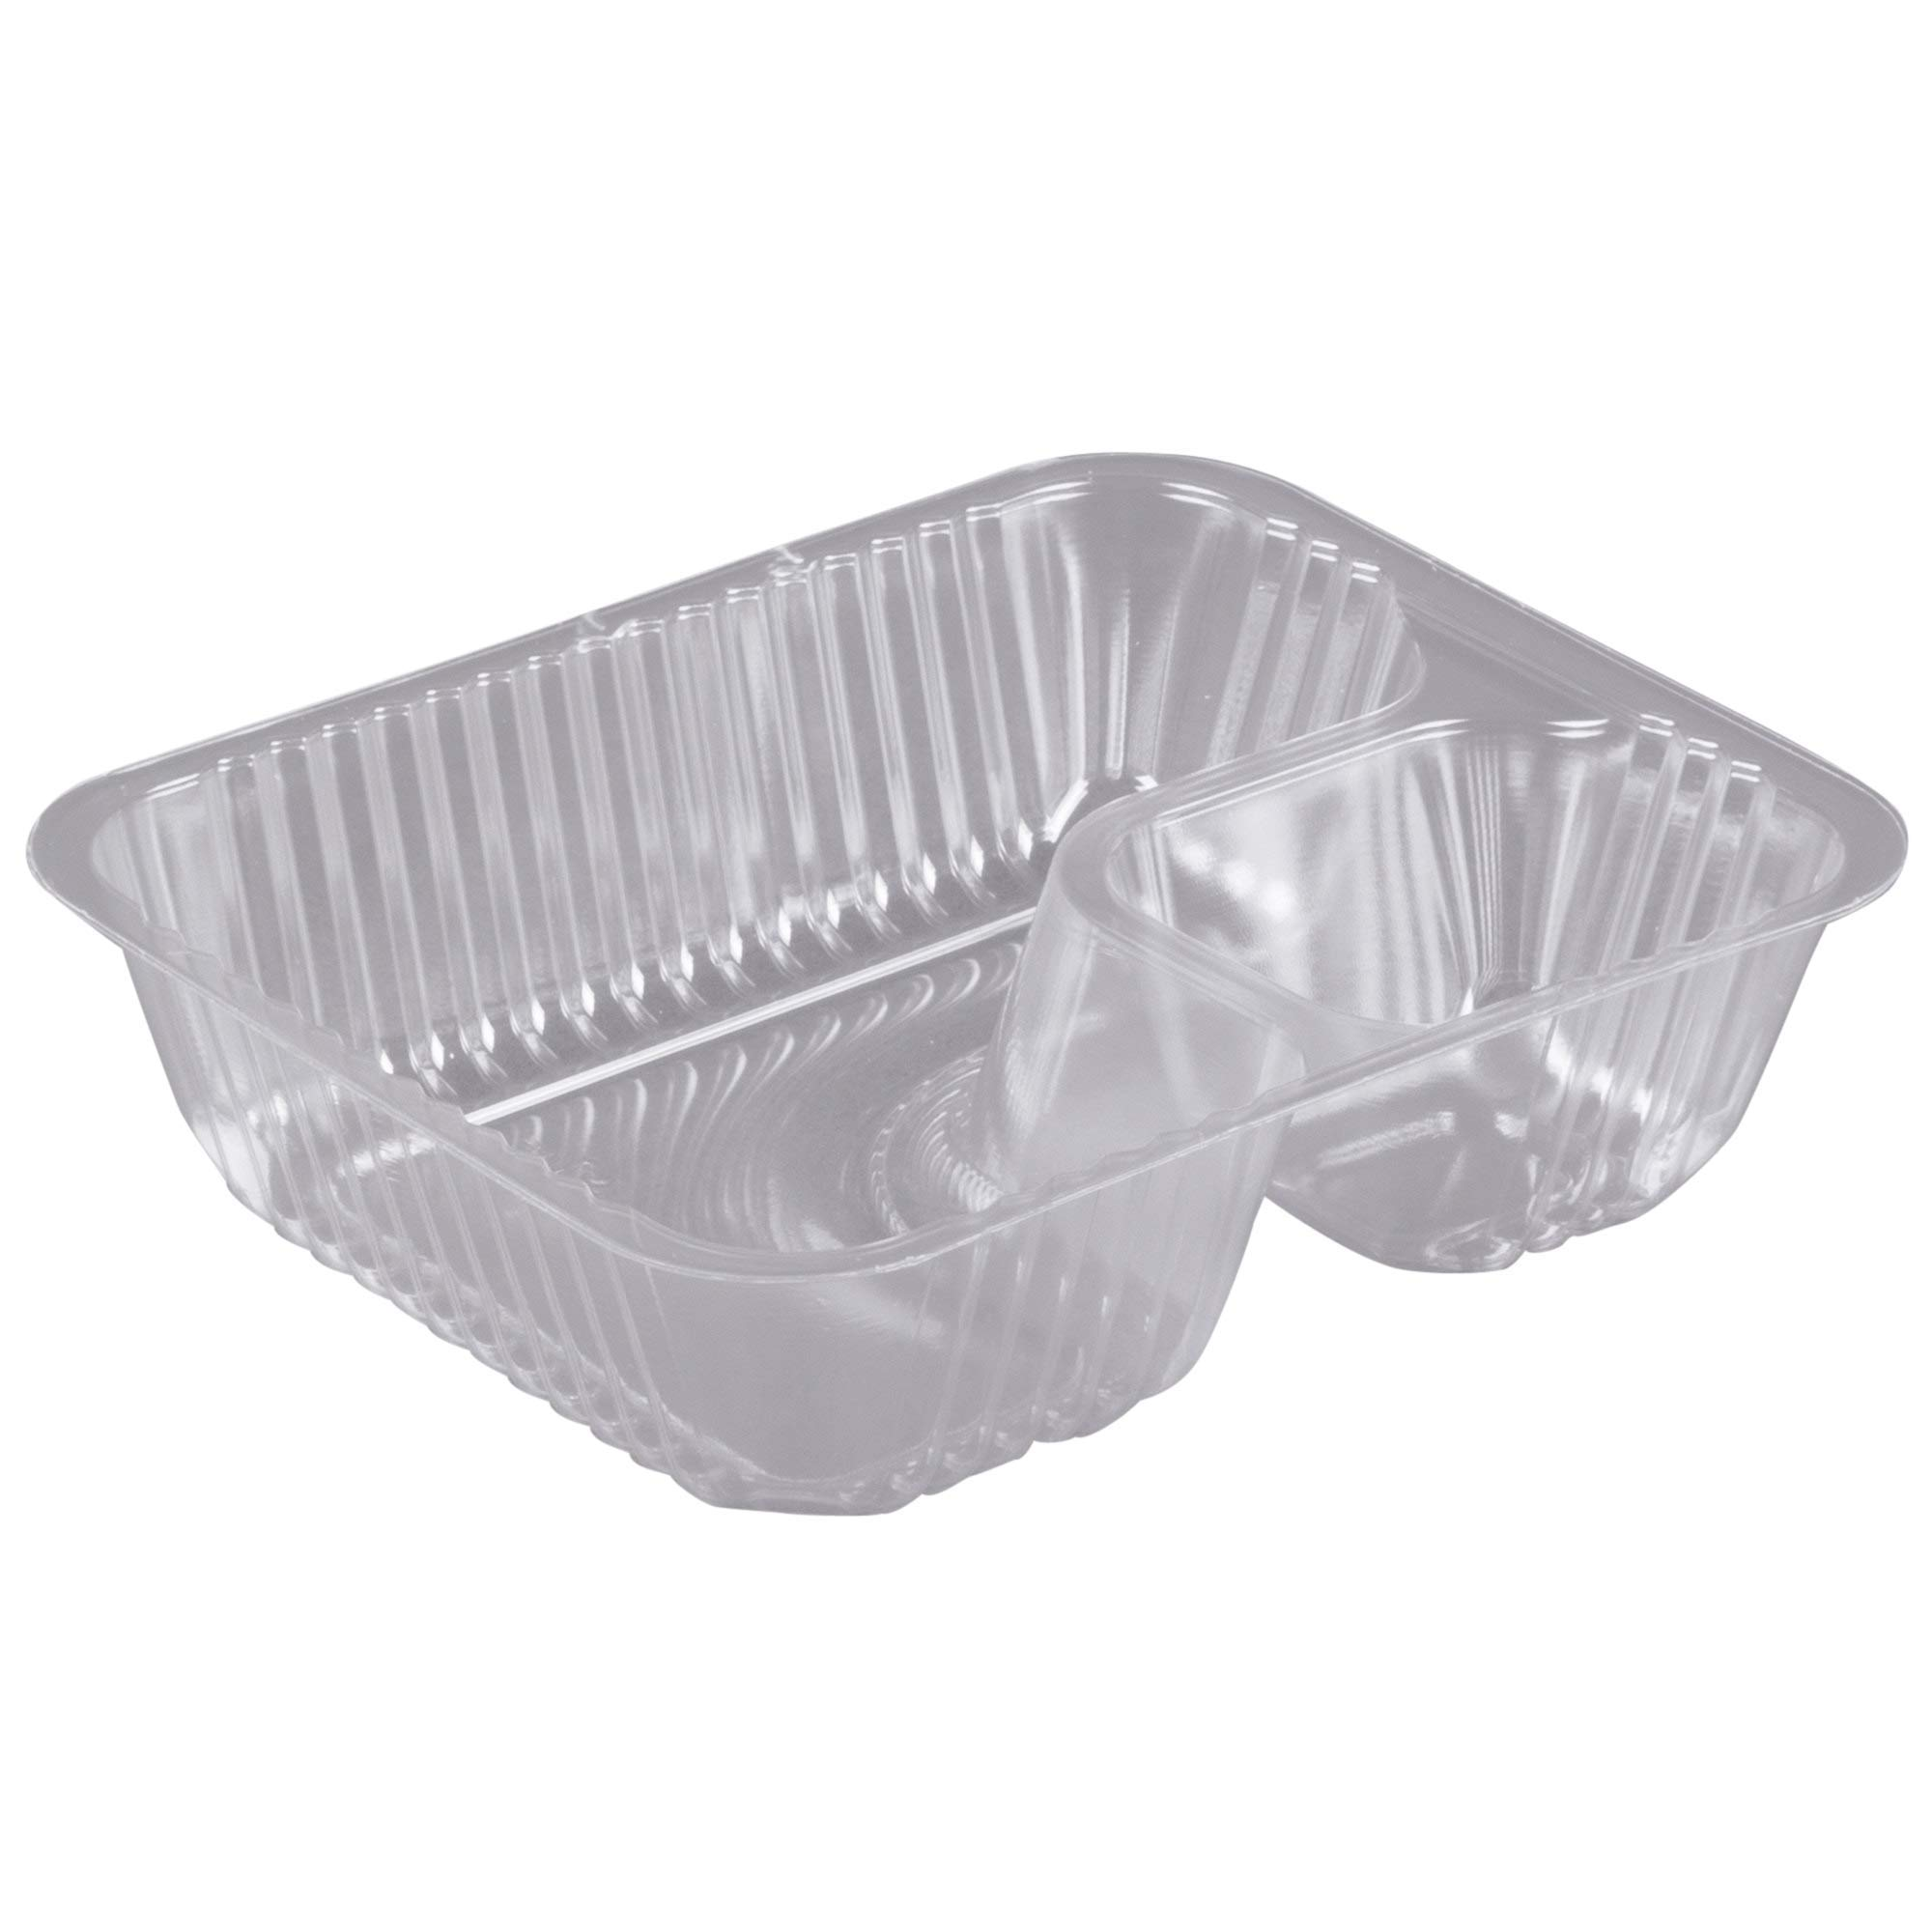 Commercial Quality Clear 2 Compartment Plastic Nacho Trays | 500/Case - Set of 2